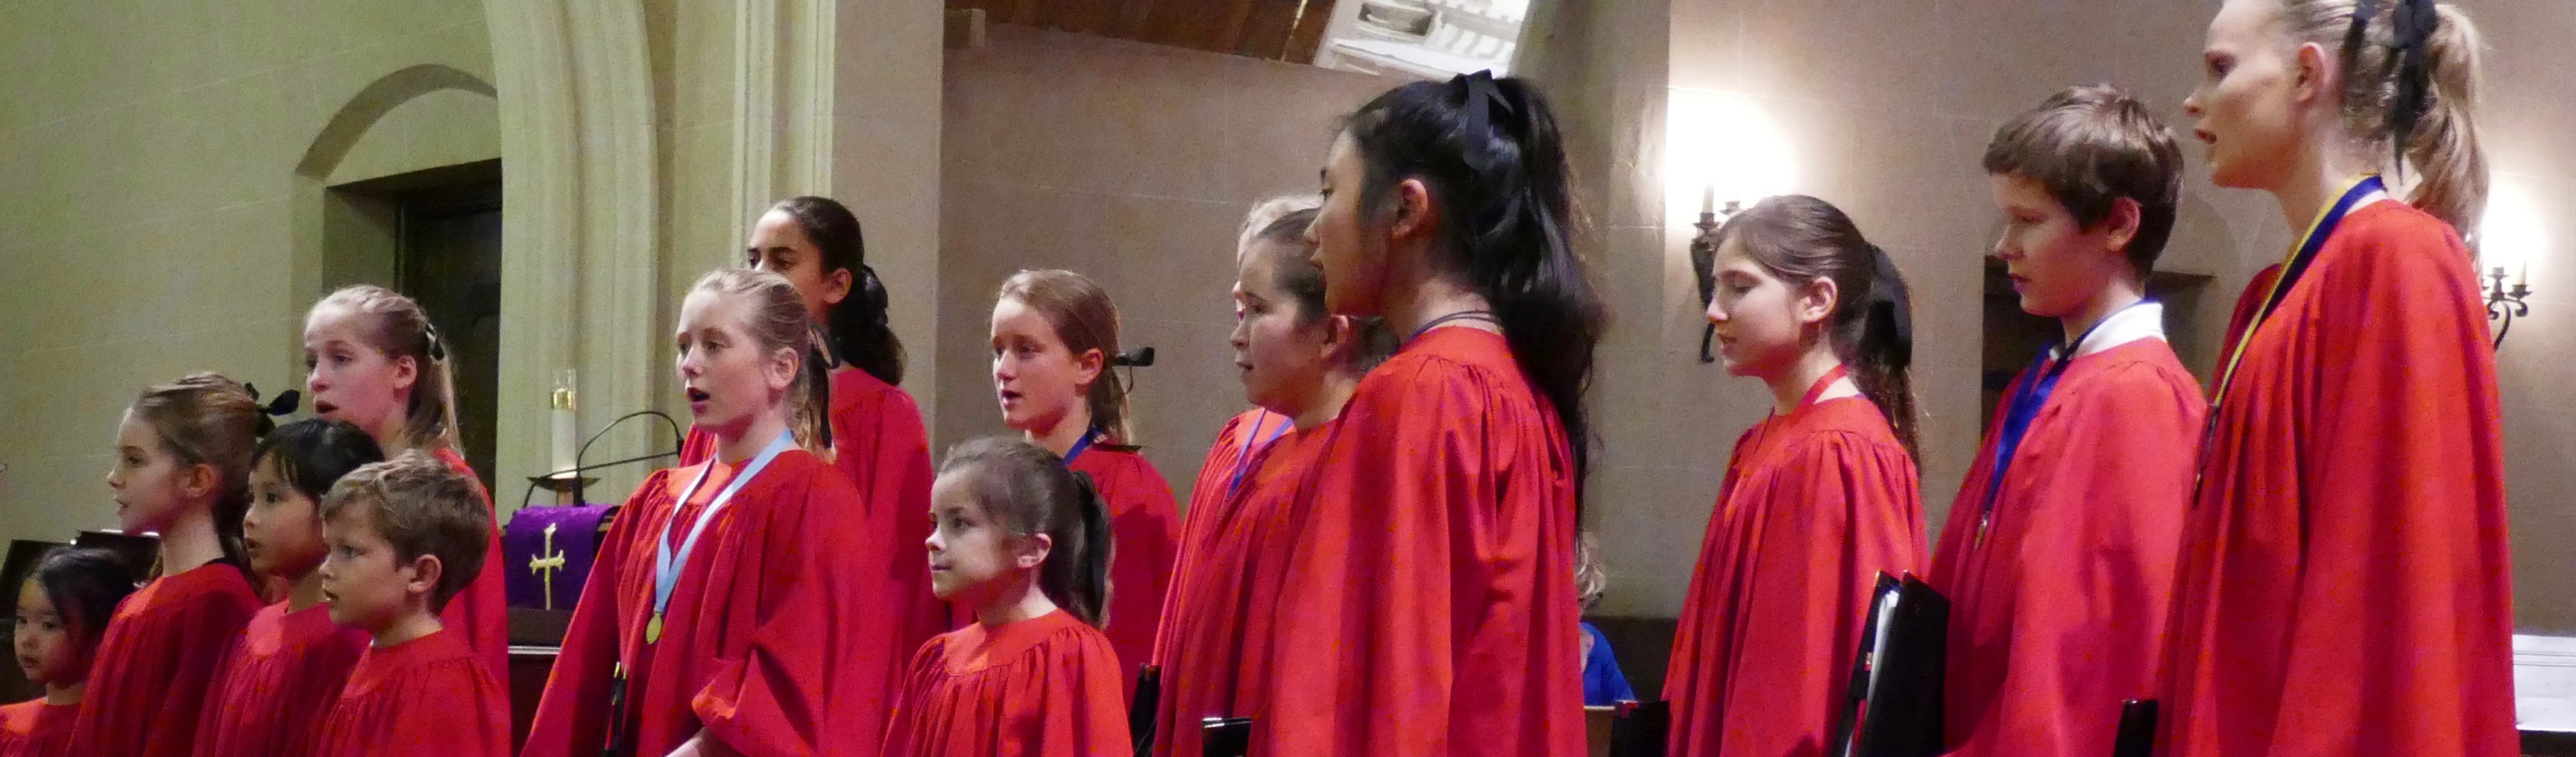 CHOIR SCHOOL CROP